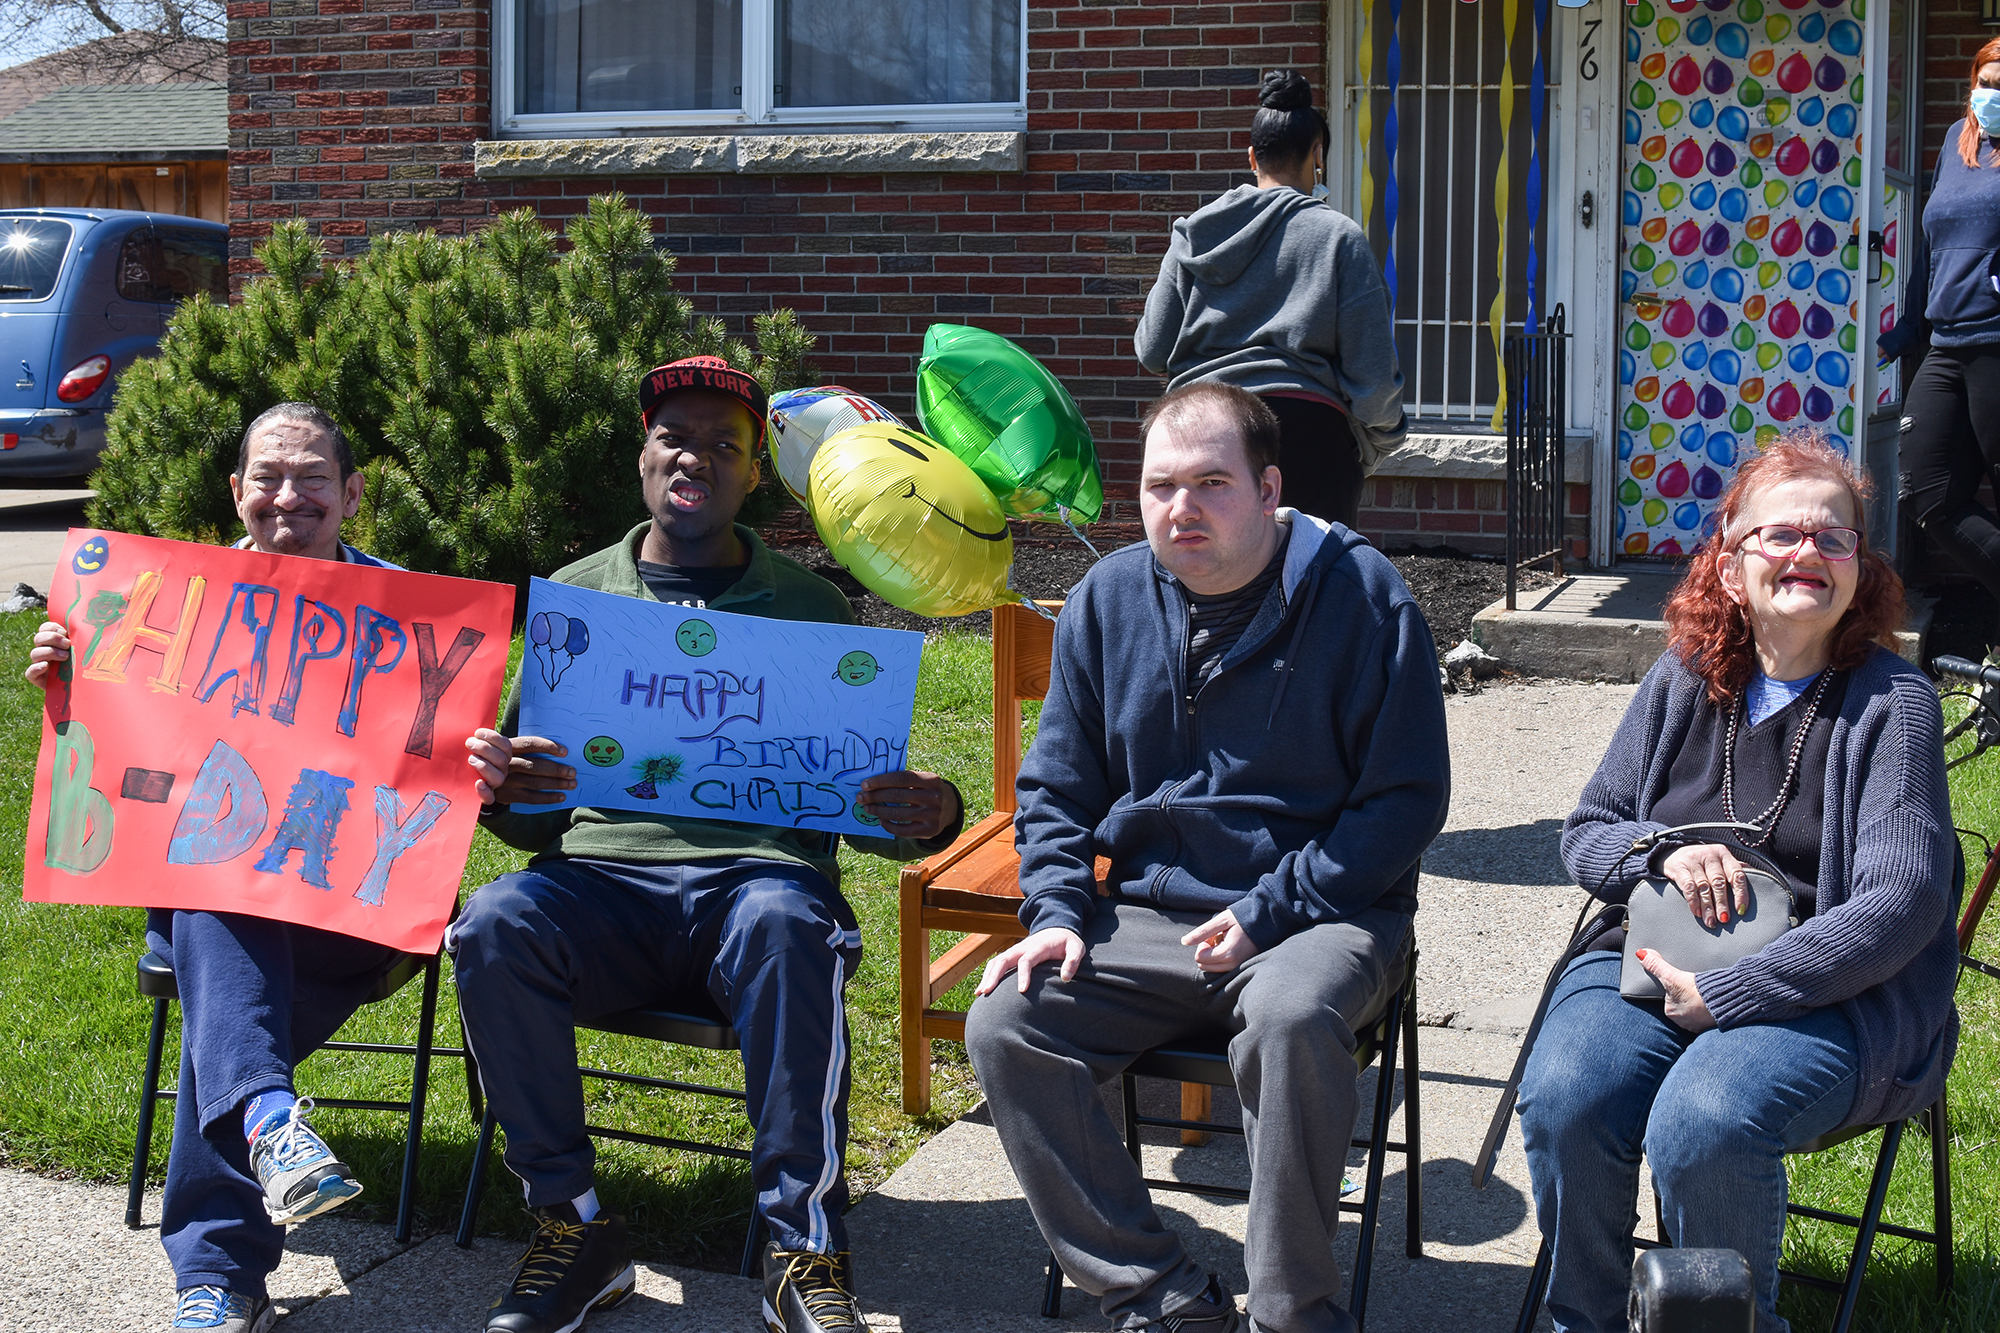 A group of residents sit outside with birthday signs